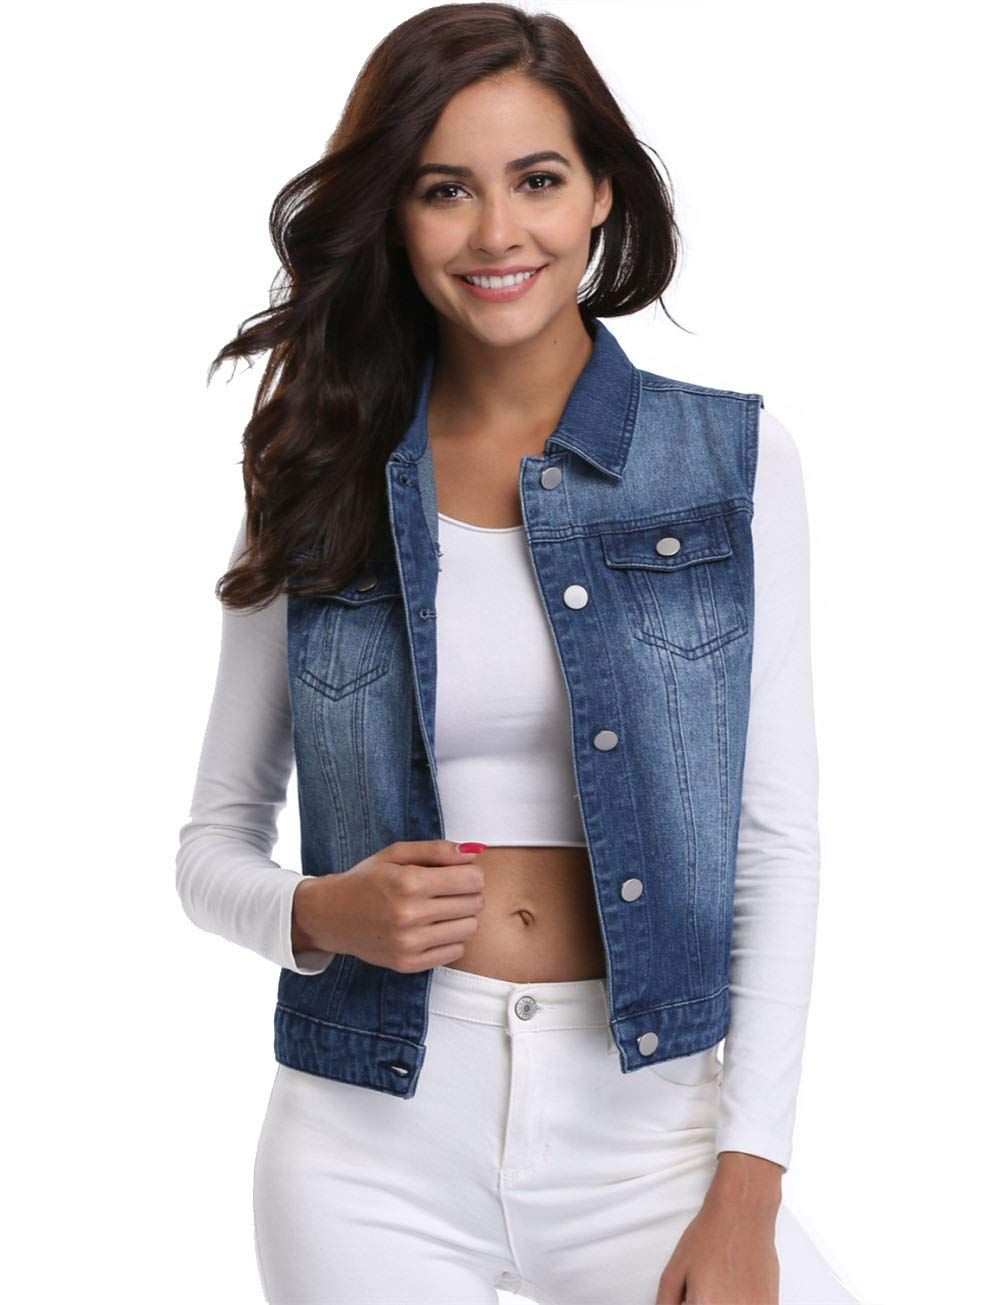 66a009ade41c MISS MOLY Clearance Jean Vest for Women Button Down Sleeveless Jean Jackets  with Pockets Dark BlueXL *** More info could be found at the image url.